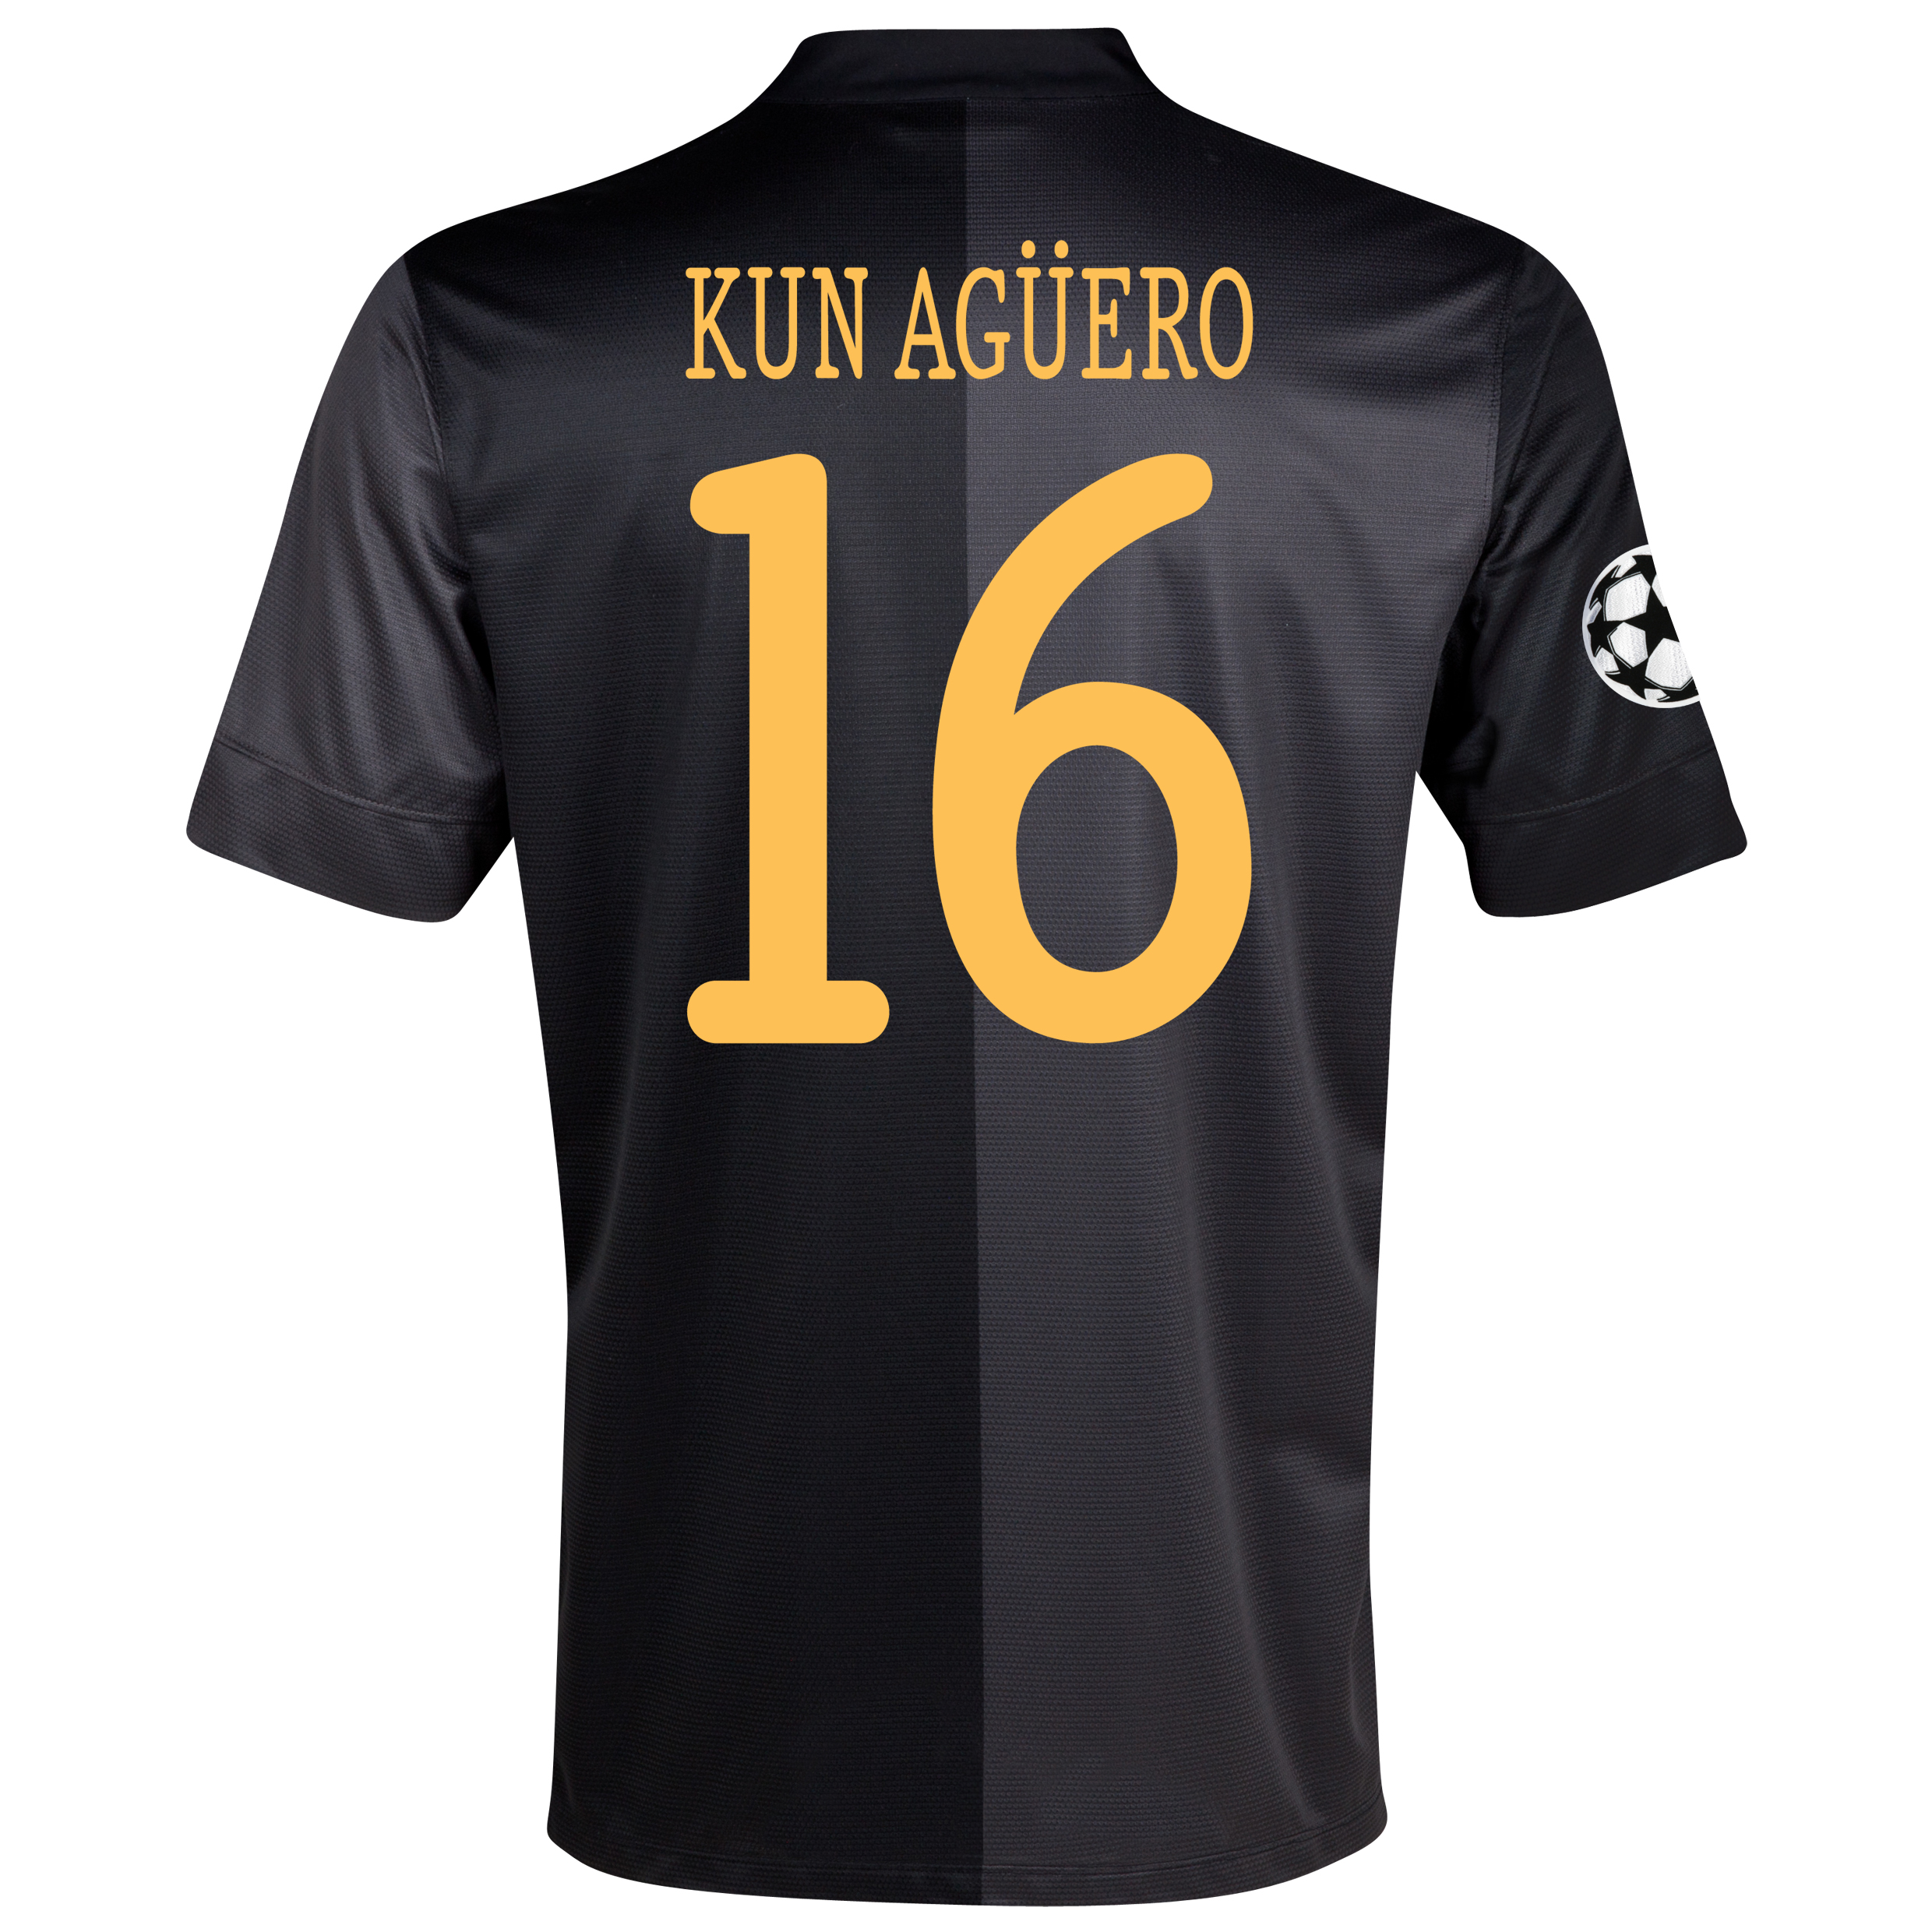 Manchester City UEFA Champions League Away Shirt 2013/14 with Kun Agüero  16 printing